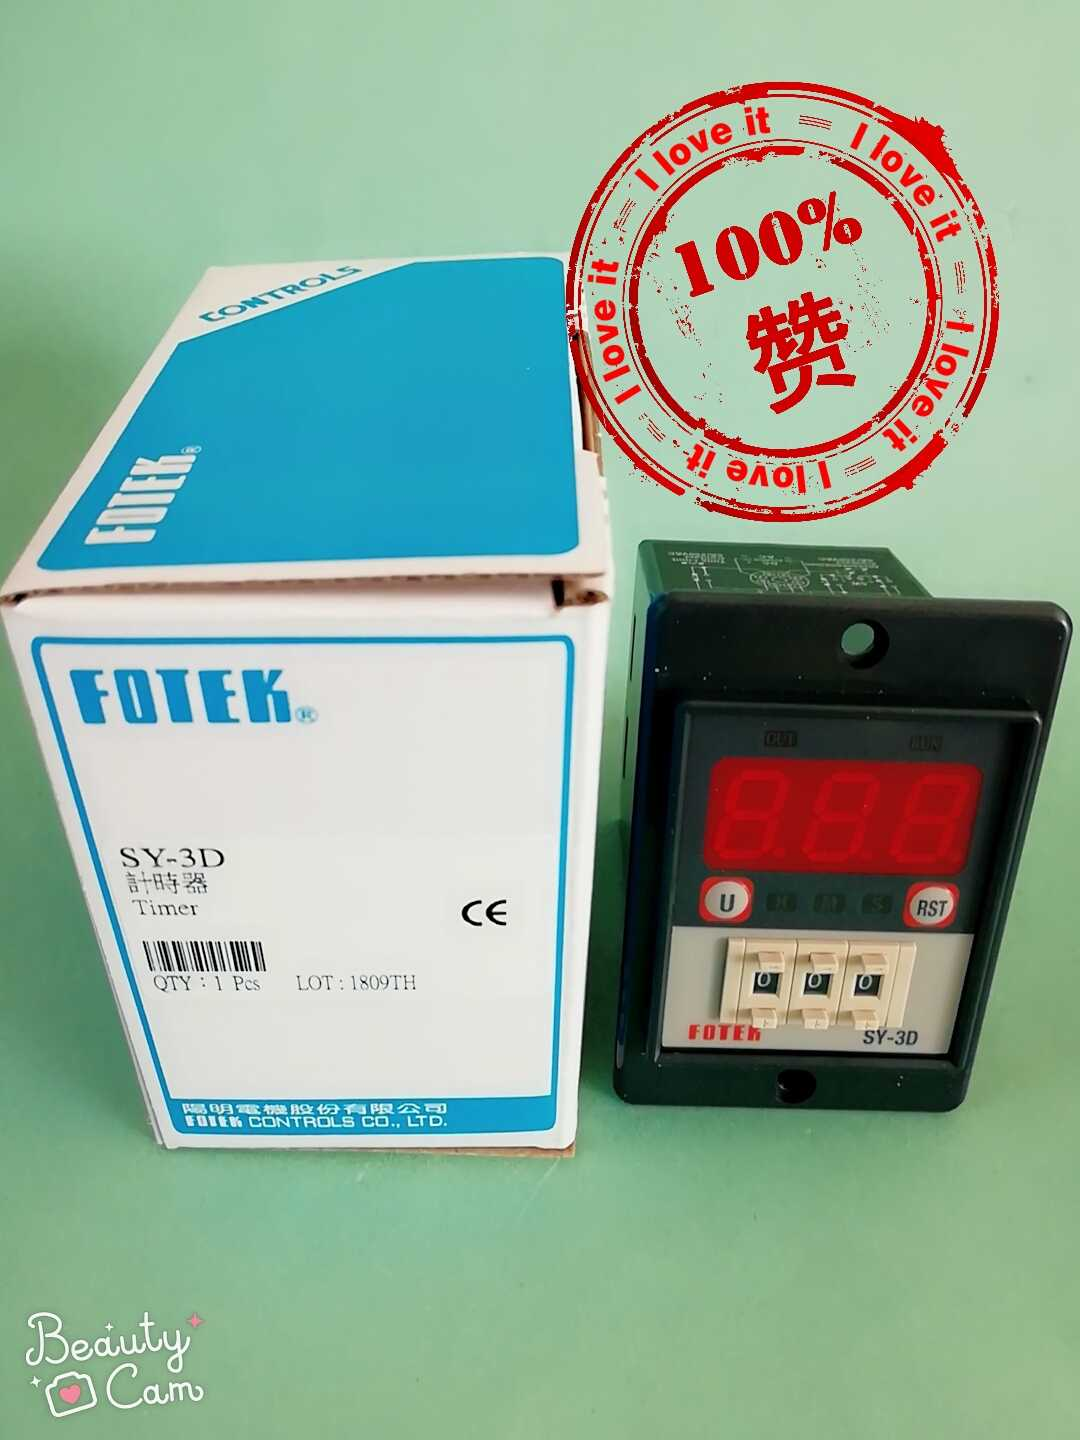 Original Imported New Timer SY-3D Time Relay Fake One Loss Ten